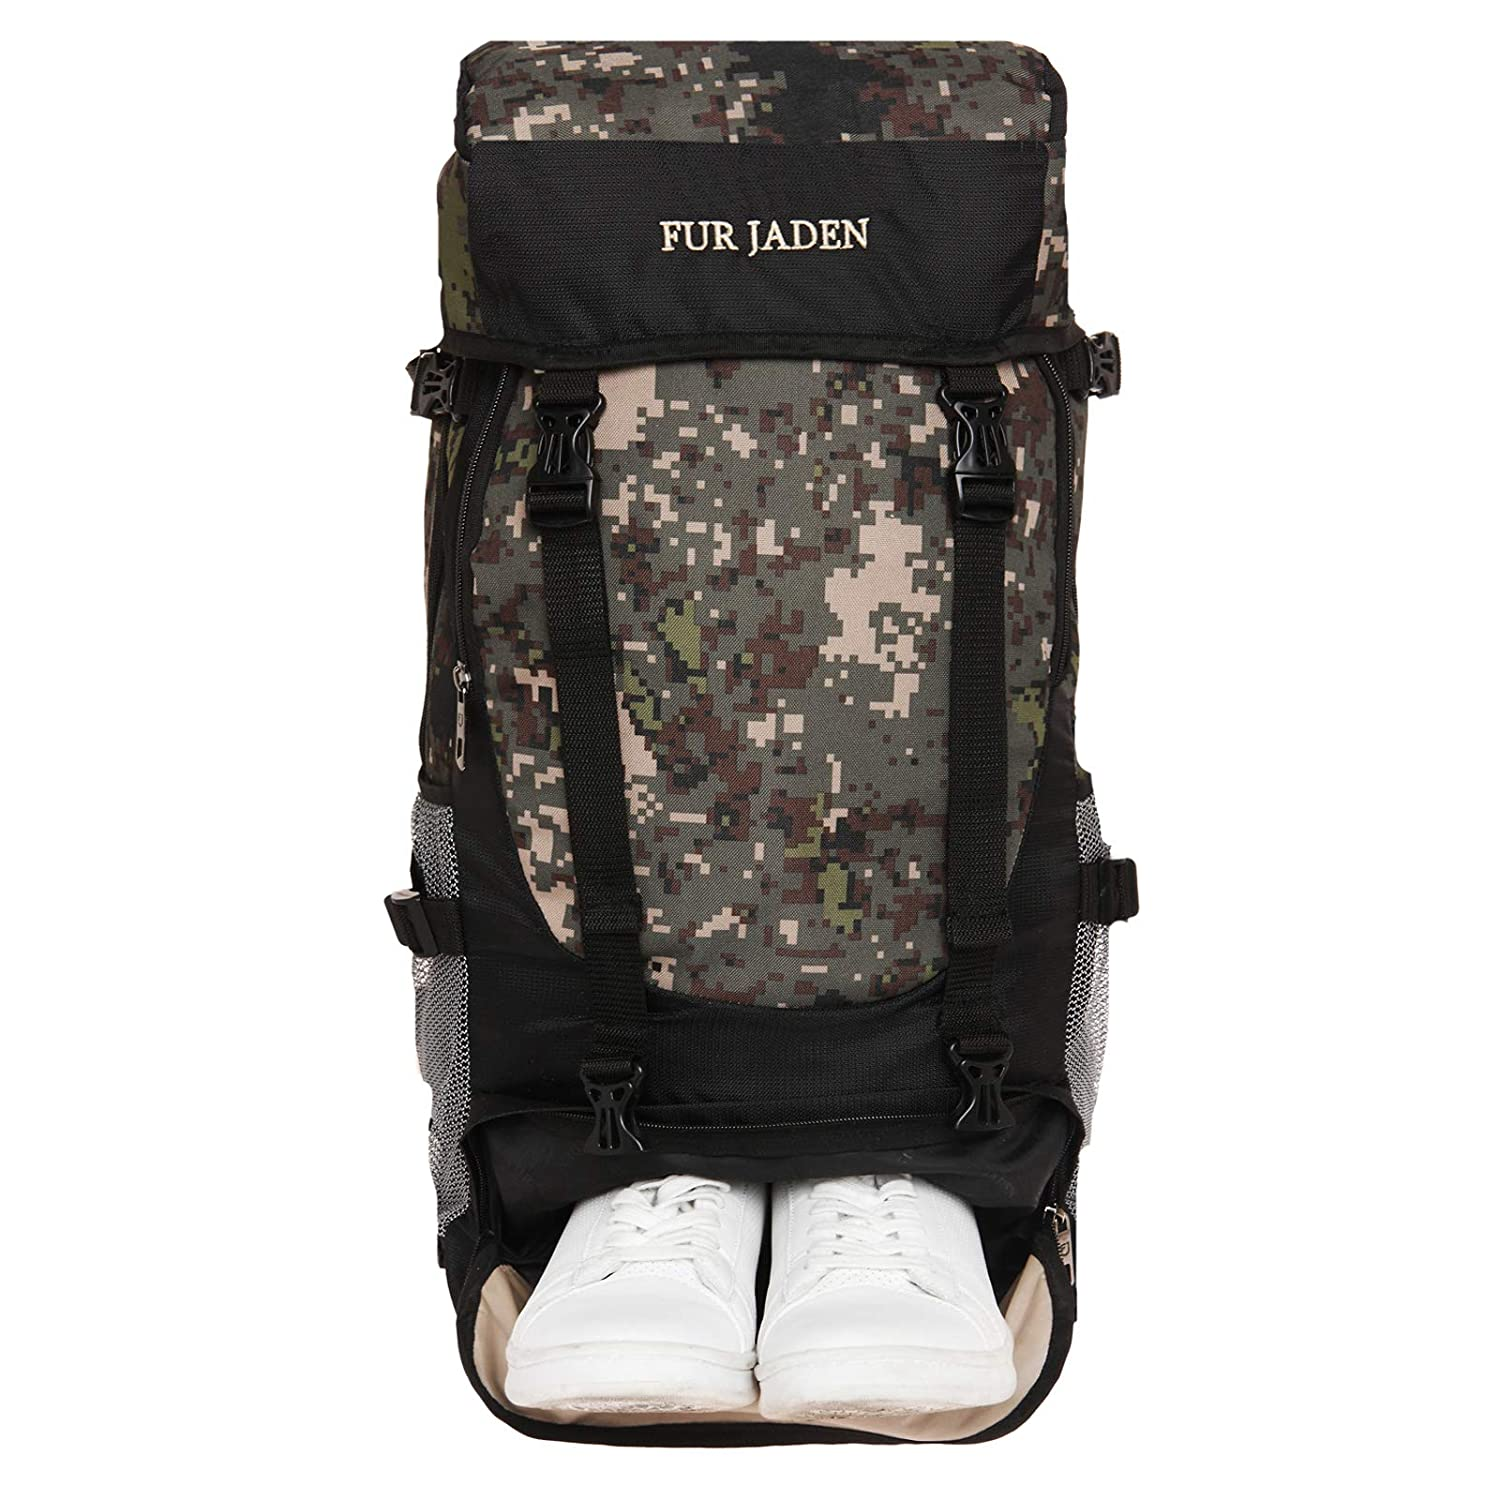 Fur Jaden, 55 LTR Military Style Rucksack Travel Backpack Bag for Trekking, Hiking, Weekend Trips, Safaris with Dedicated Shoe Compartment